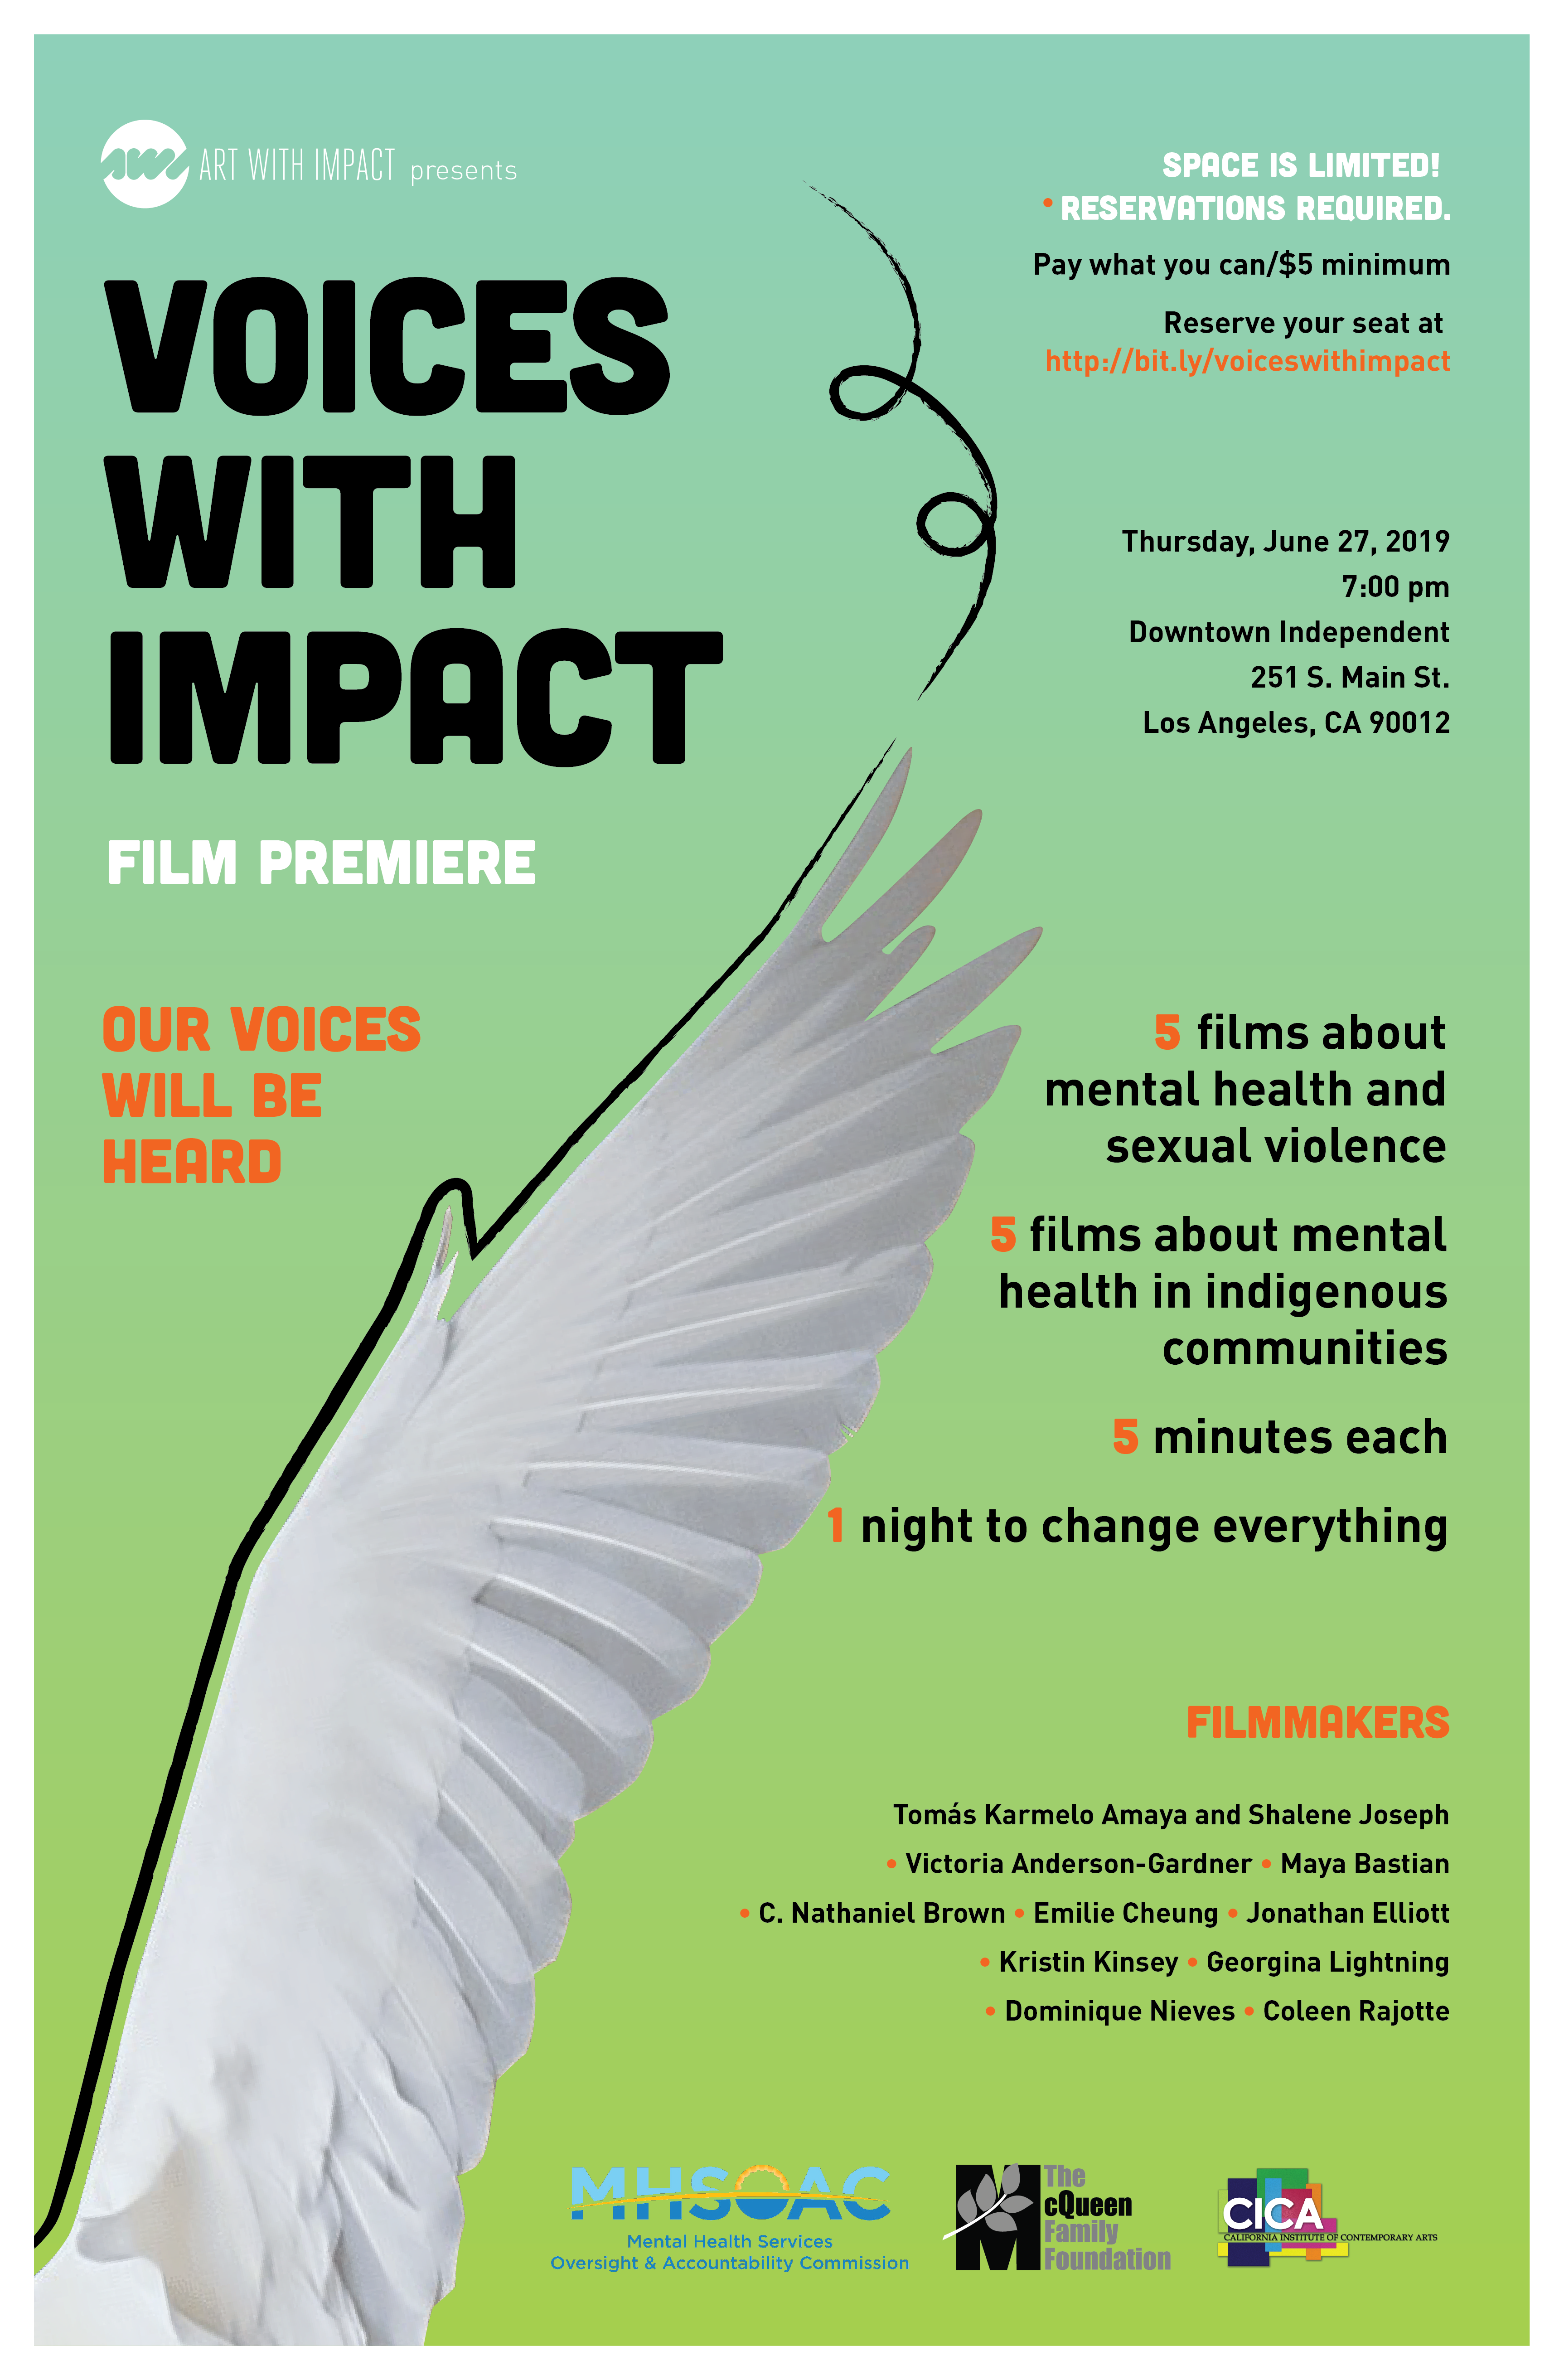 Voices With Impact Film Premiere - Art With Impact : Art With Impact